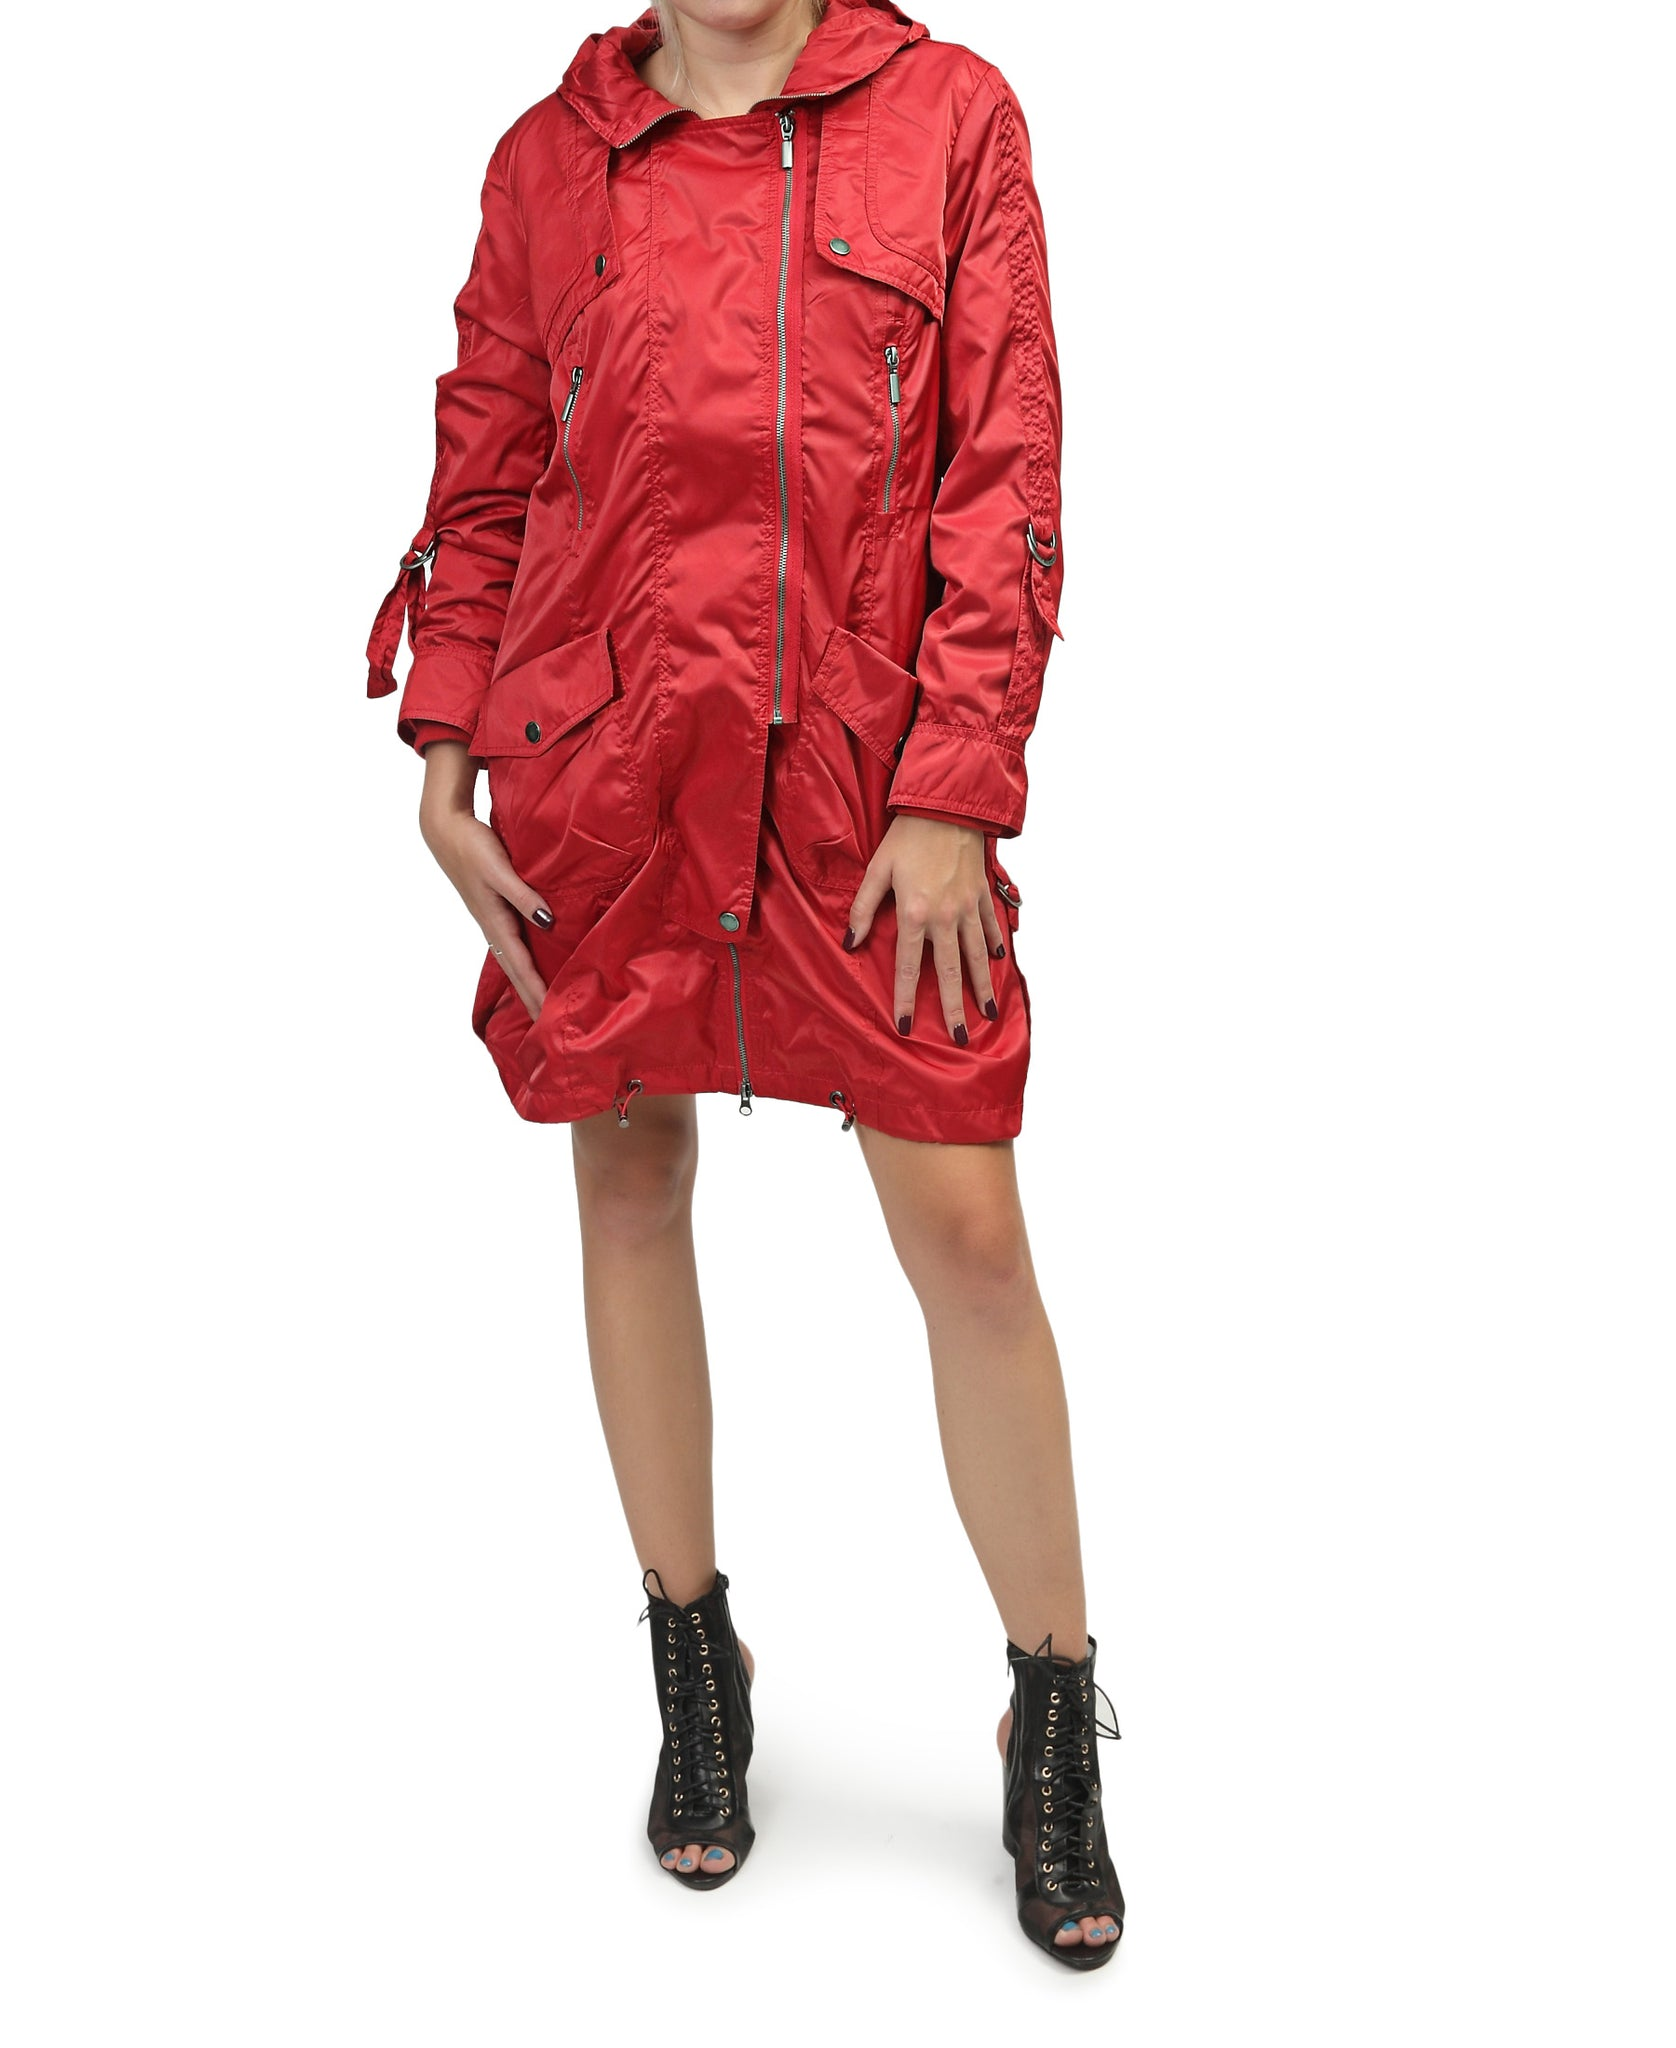 2 Piece Cargo Jacket - Red